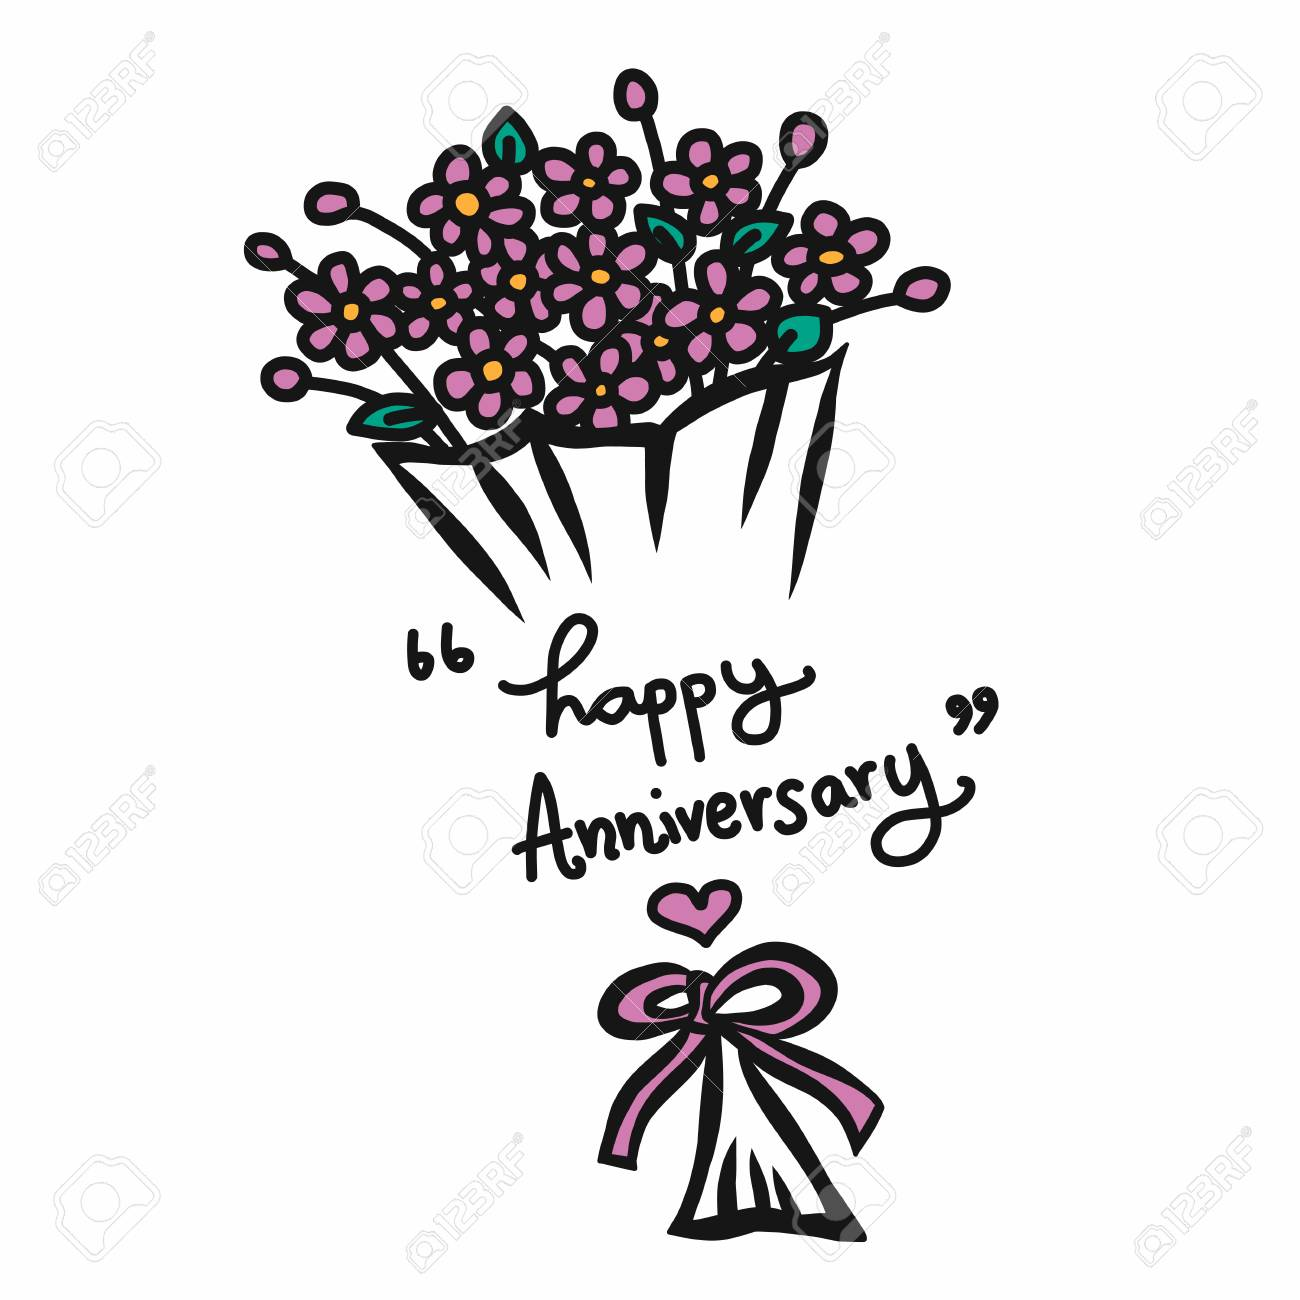 Happy anniversary word and flower bouquet cartoon vector happy anniversary word and flower bouquet cartoon vector illustration stock vector 103869919 izmirmasajfo